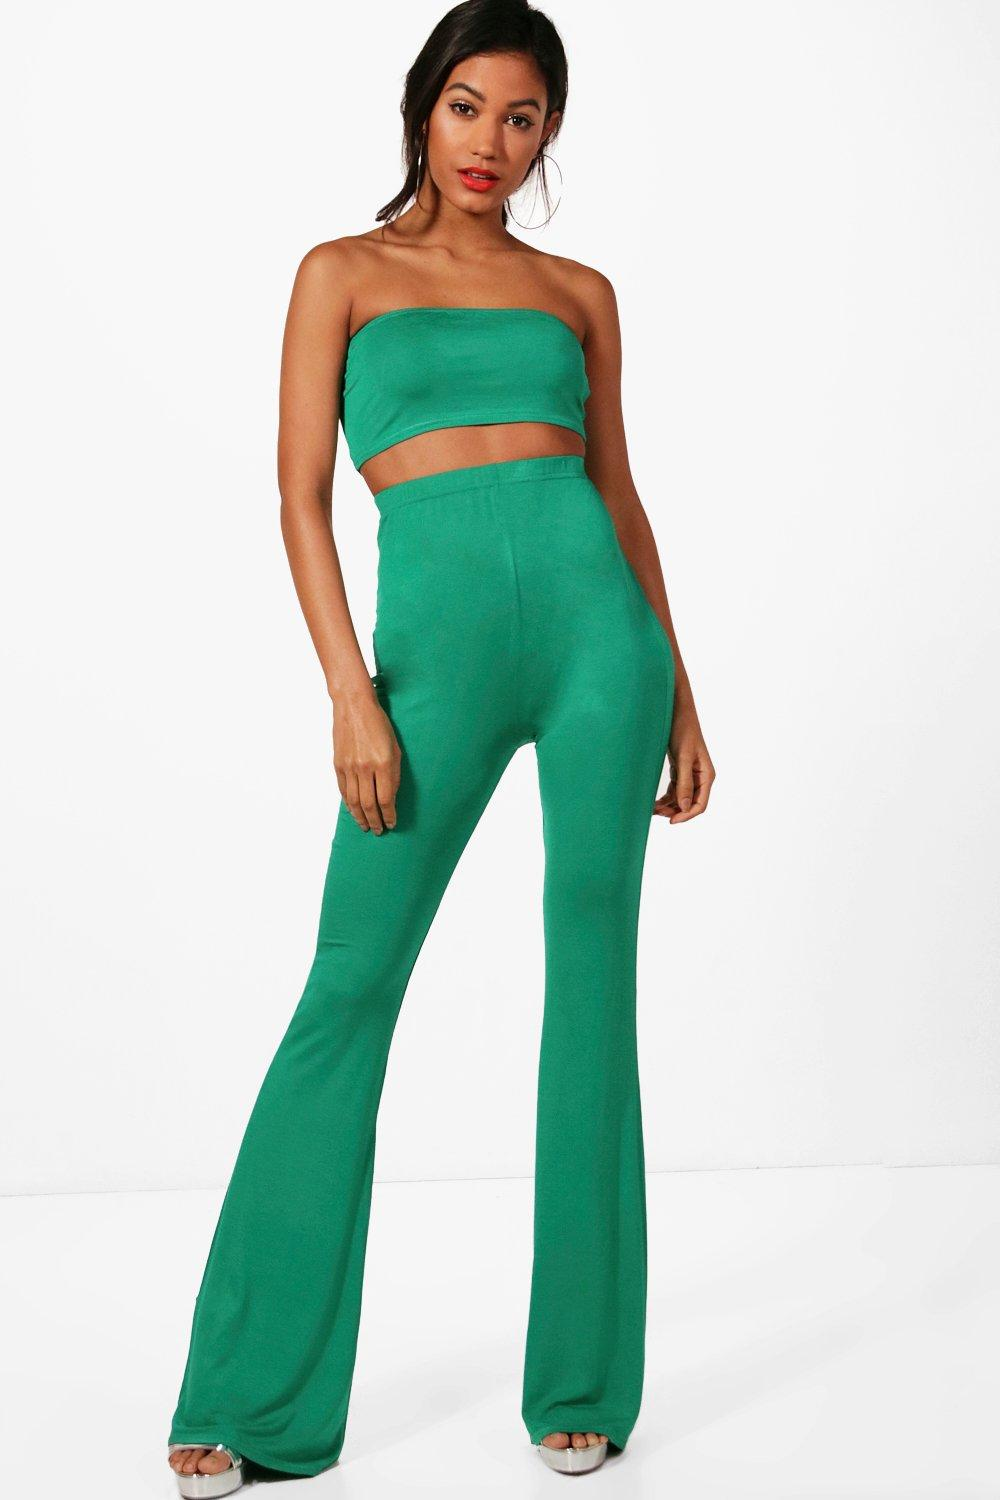 and ord green Trouser leaf Basic Co Bandeau Flared Sqx4Xgcw5v